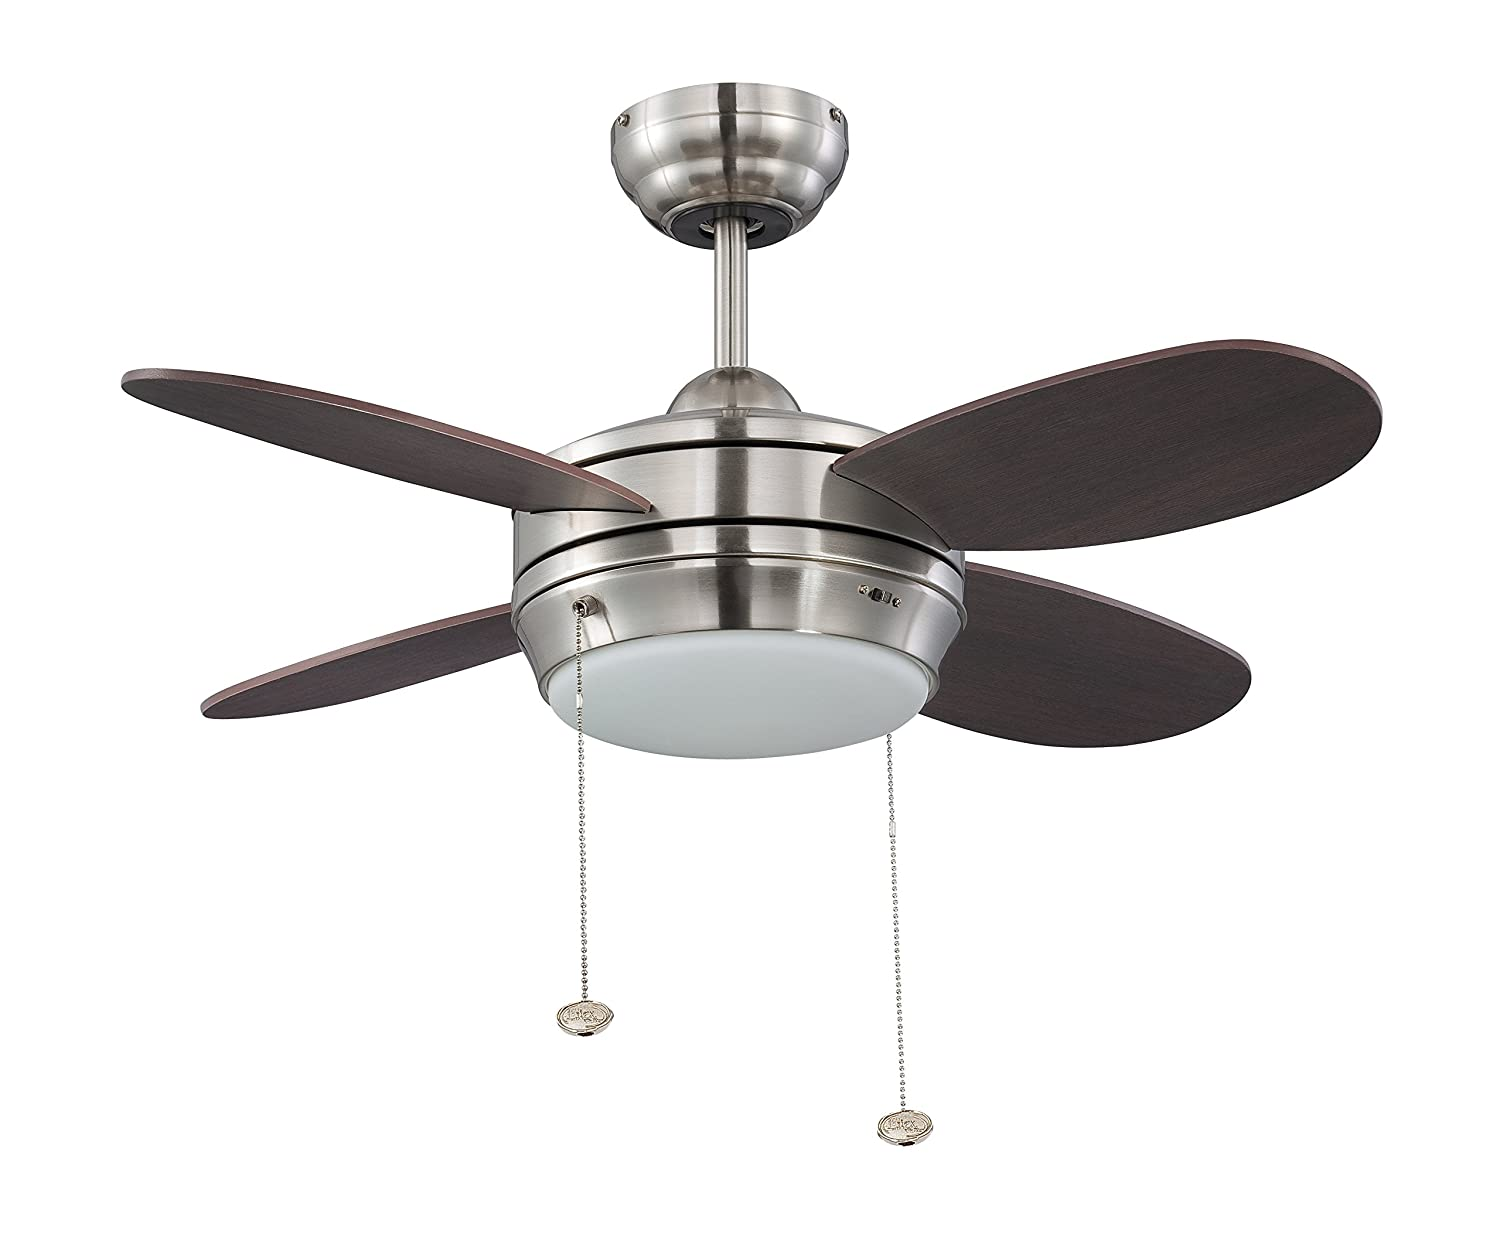 Litex e mlv36bnk4lk1 maksim collection 36 inch ceiling fan with five litex e mlv36bnk4lk1 maksim collection 36 inch ceiling fan with five wench wood blades and single light kit with opal frosted glass amazon aloadofball